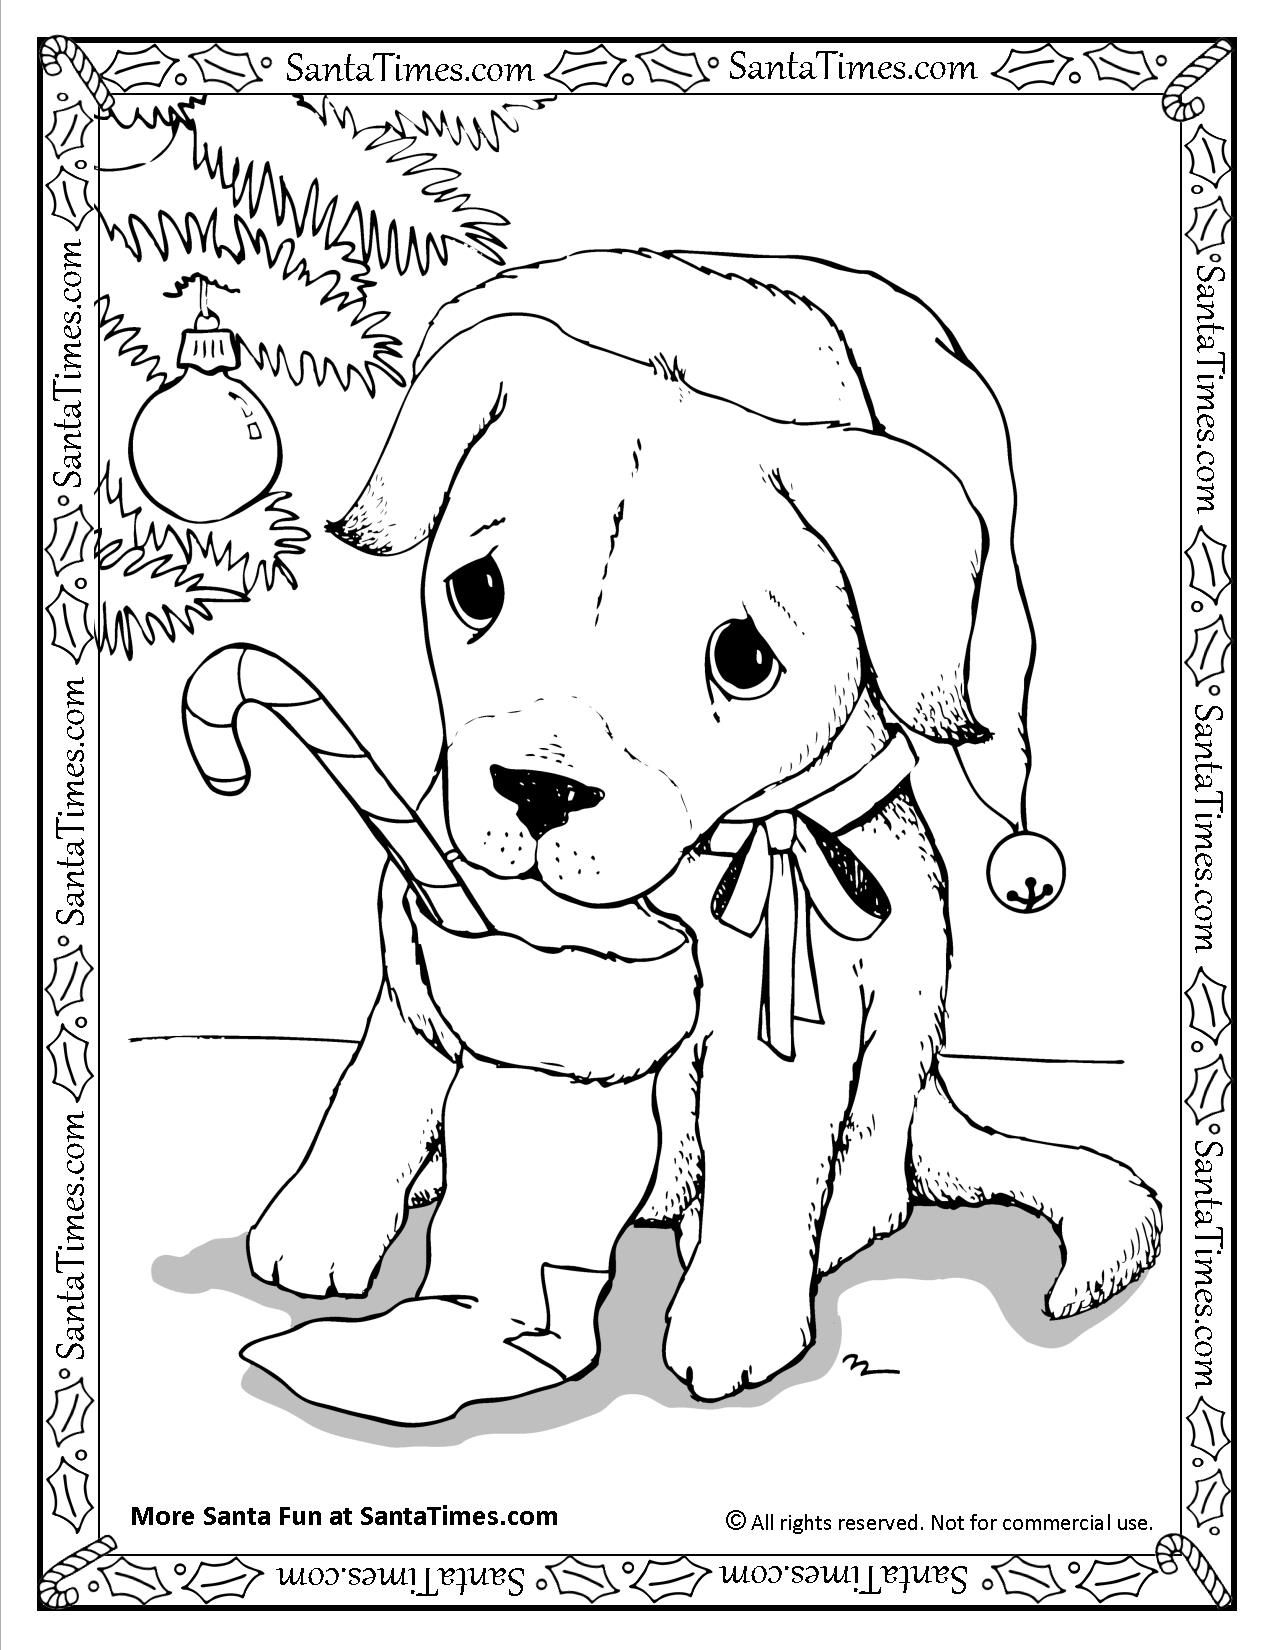 Santa Puppy Printable Christmas Coloring Page More Fun Activities